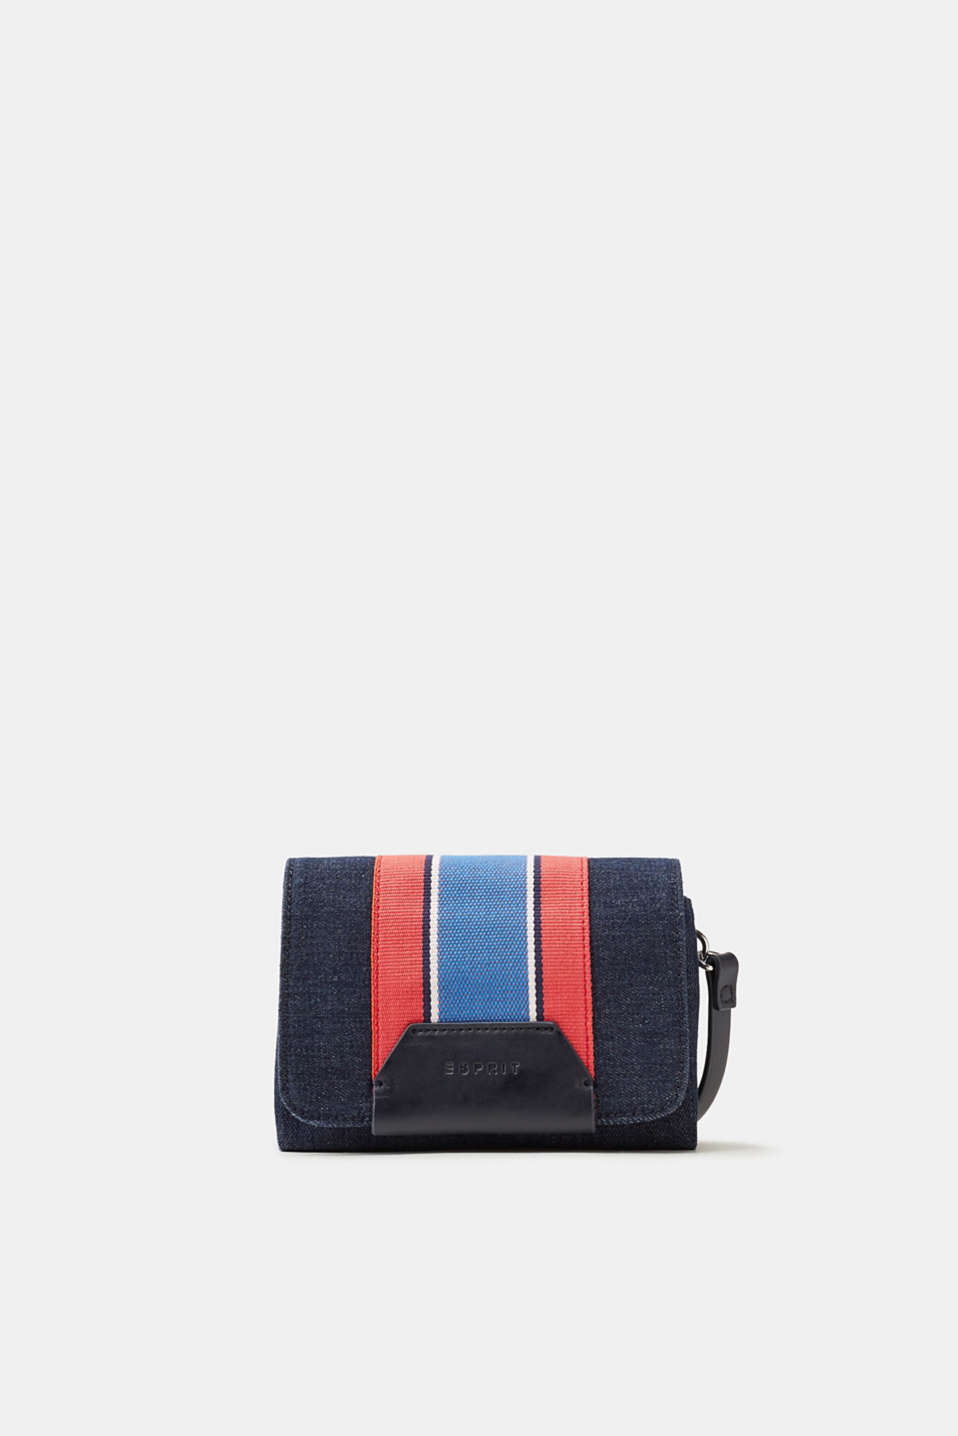 Esprit - Small shoulder bag in a denim look